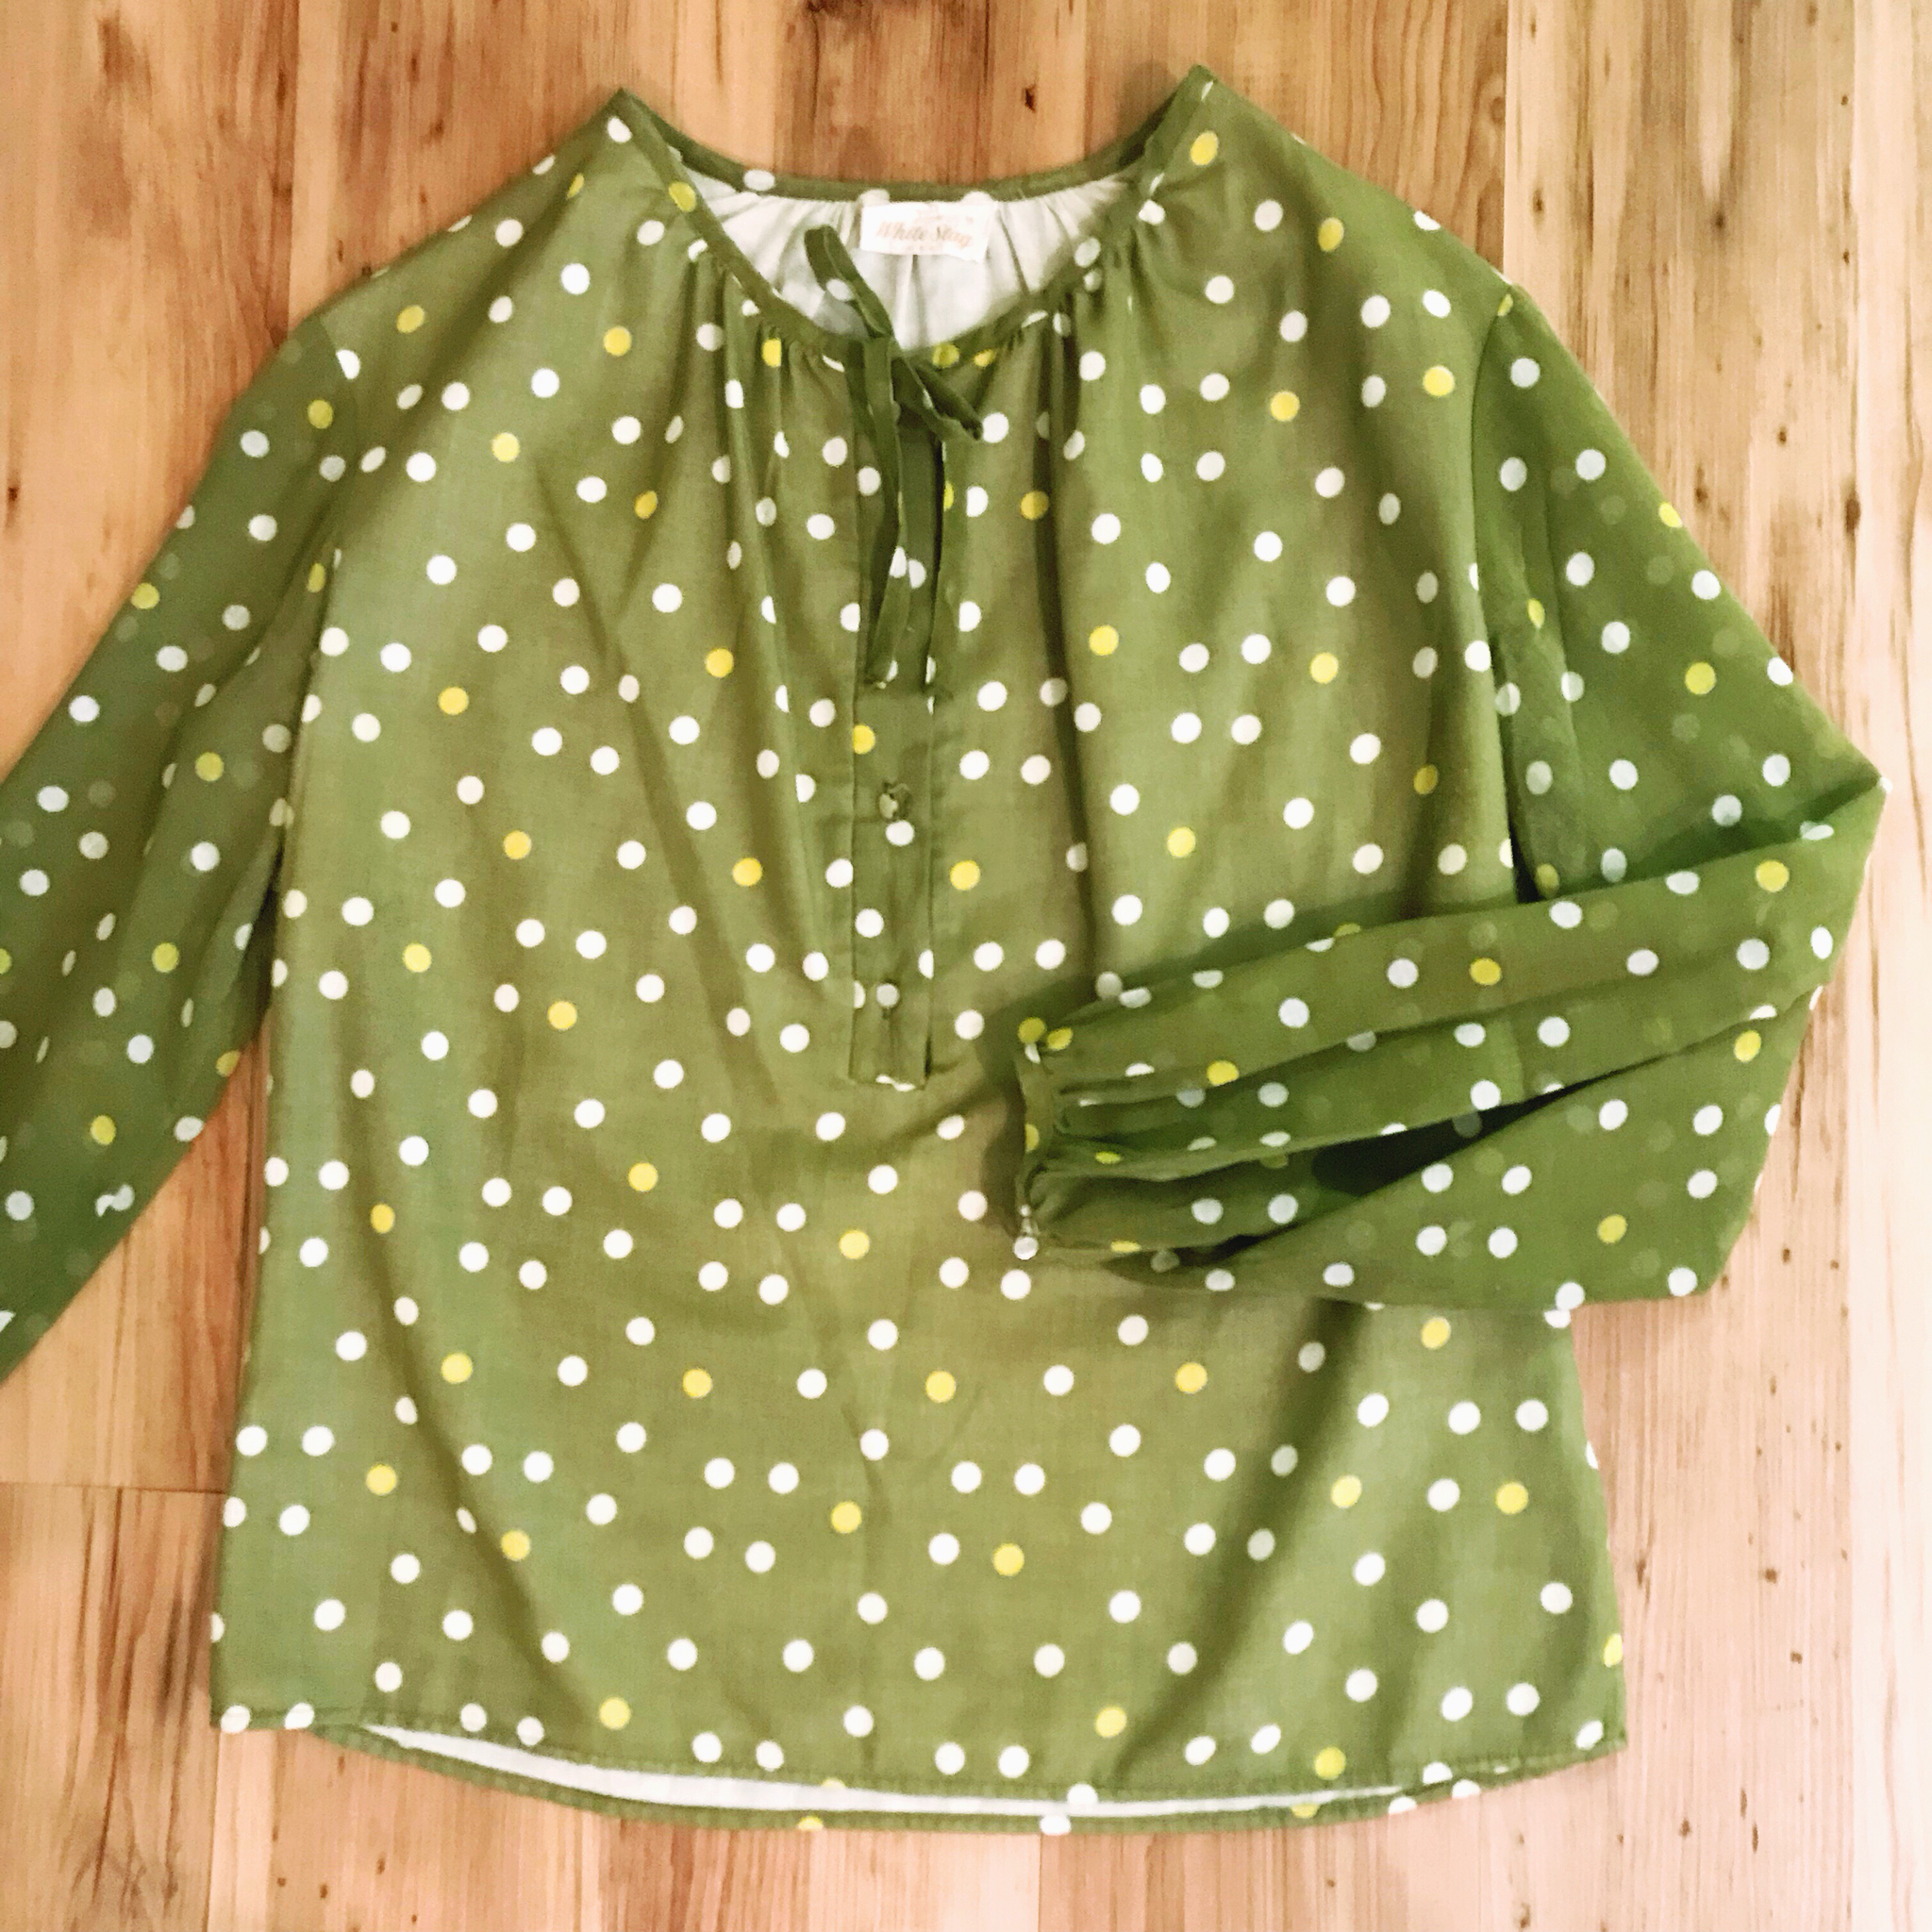 1970s Avocado Dotted Blouse